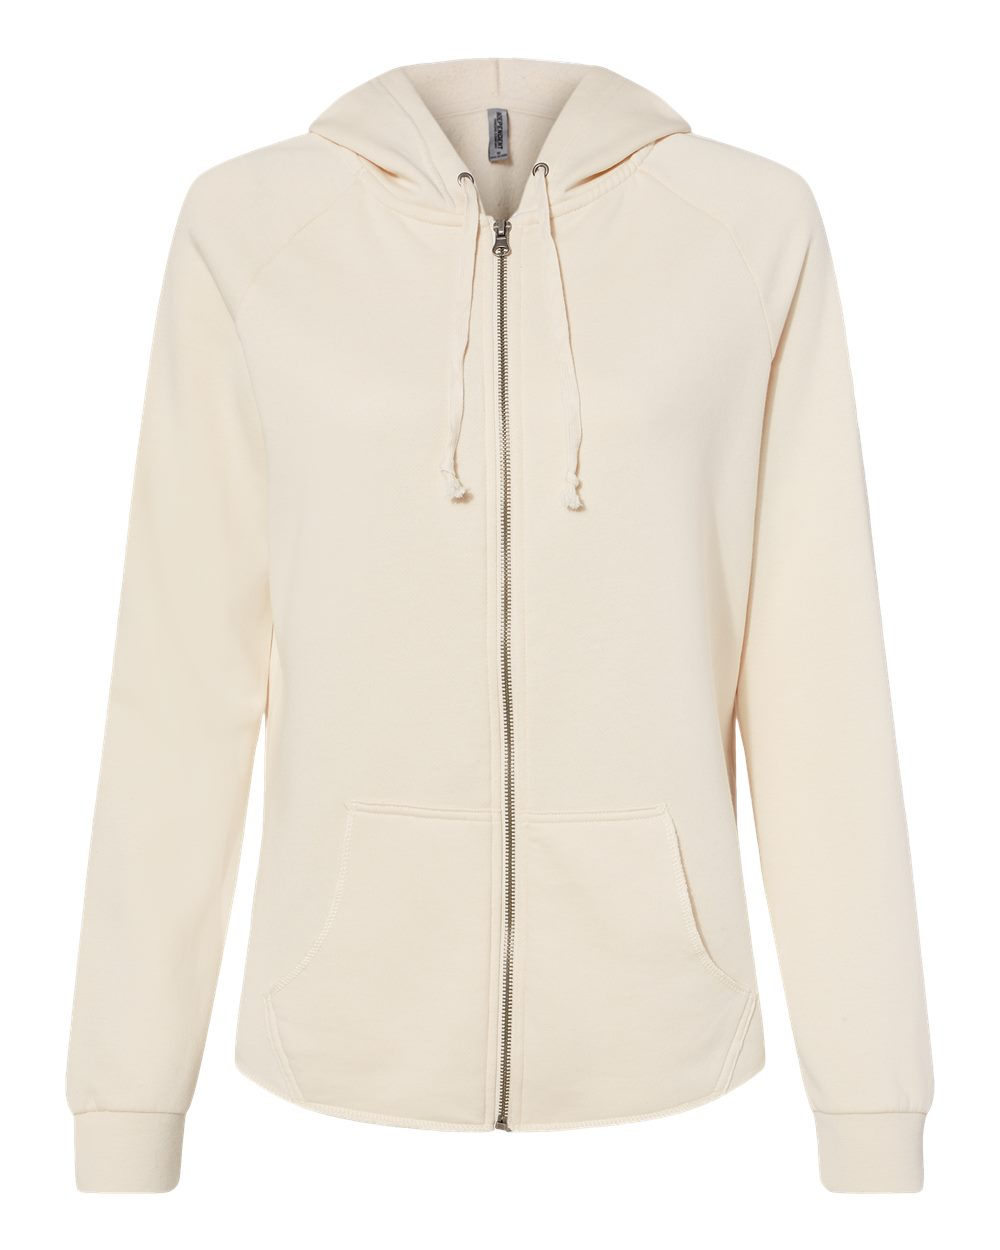 Independent-Trading-Co-Women-039-s-Wave-Wash-Full-Zip-Hooded-Sweatshirt-PRM2500Z thumbnail 2